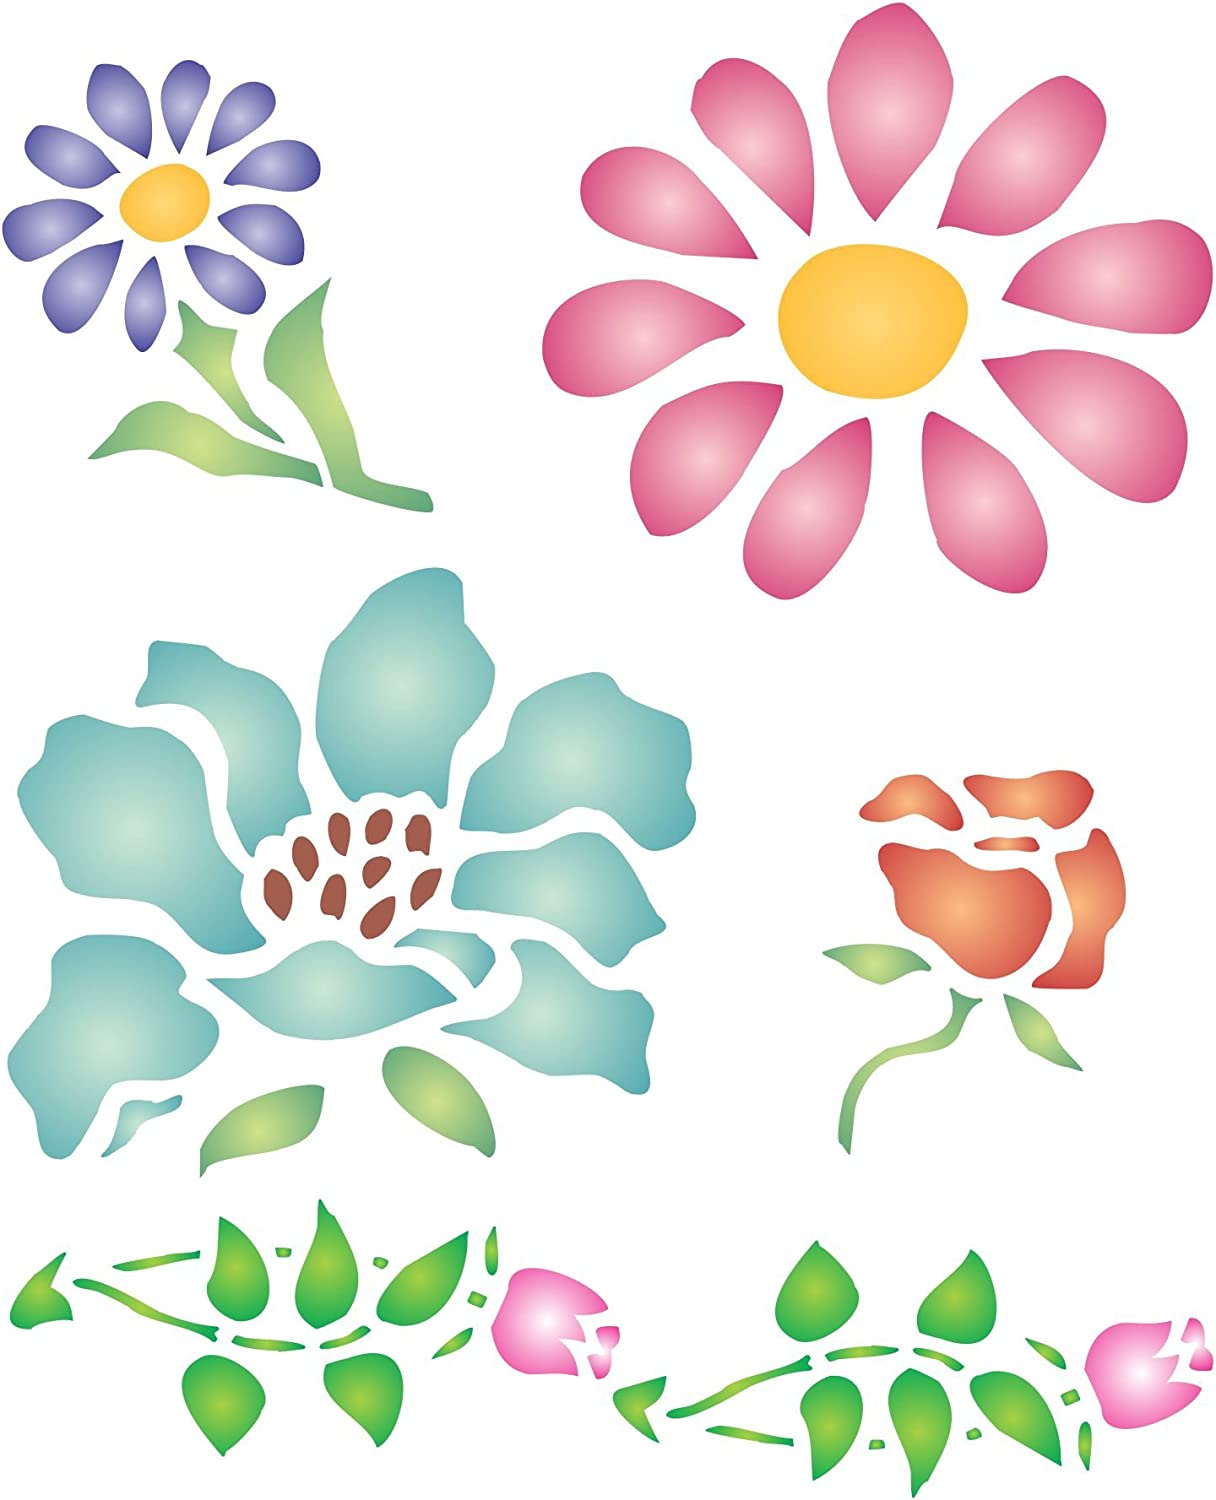 DIY Decorative Poppy Flower Stencil Template for Scrapbooking Painting on Wall Furniture Crafts Set of 6 Flower